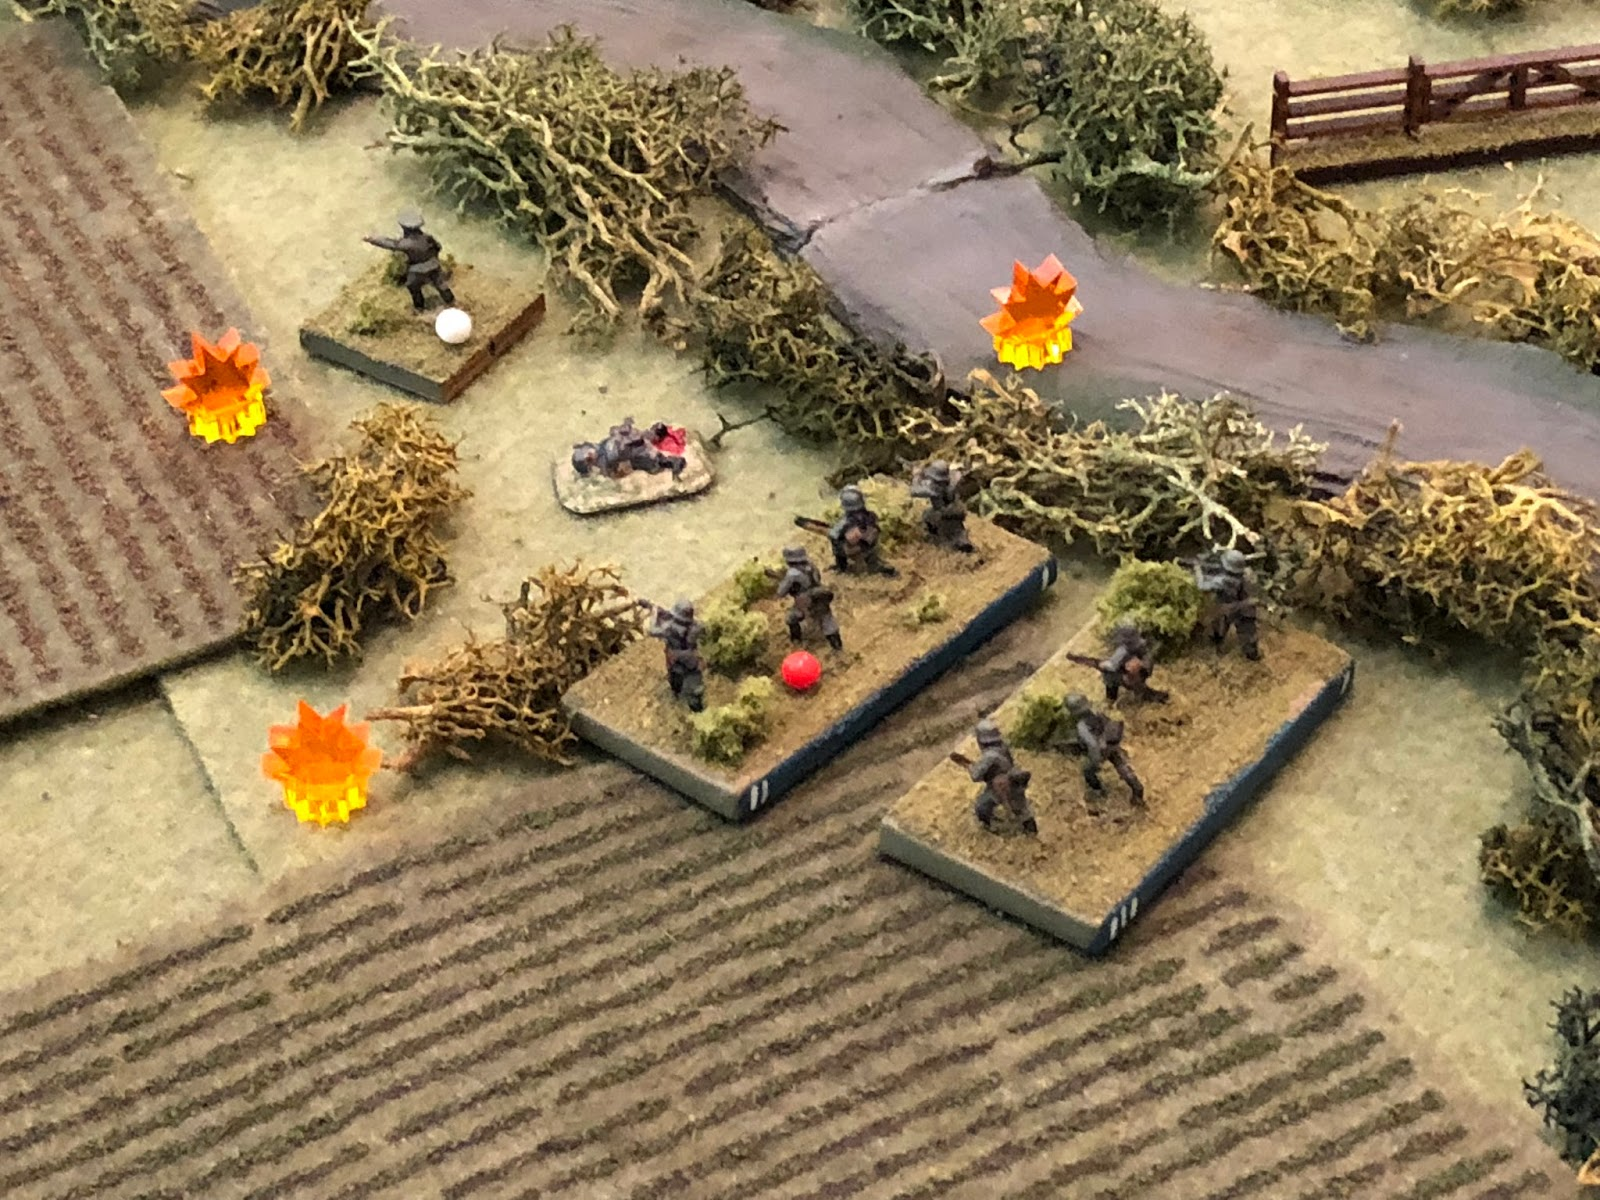 And the French fusillade is furious, knocking out SSgt Aust's 1st Squad and suppressing Lt Klugmann and Sgt Kamphaus' 2nd Squad (red bead, Lt Klugmann has a white bead but it should be red, too, I just screwed up).